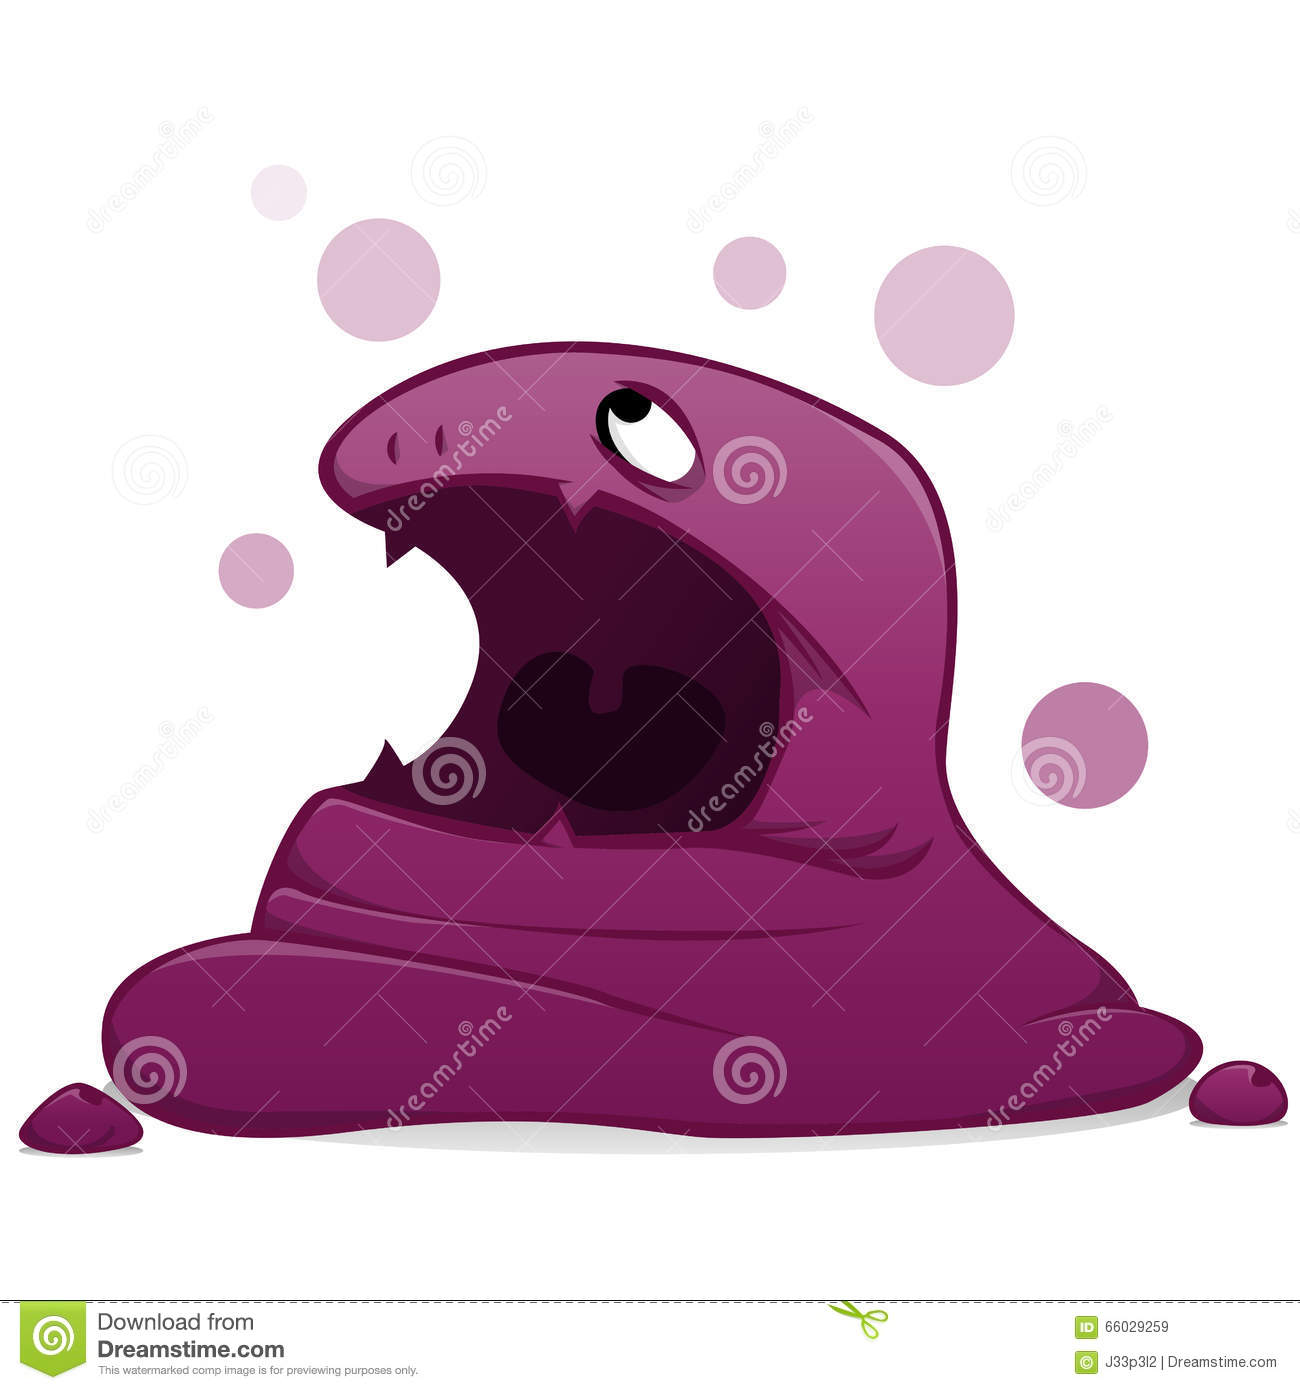 Monster Purple Slime Stock Illustration - Image: 66029259